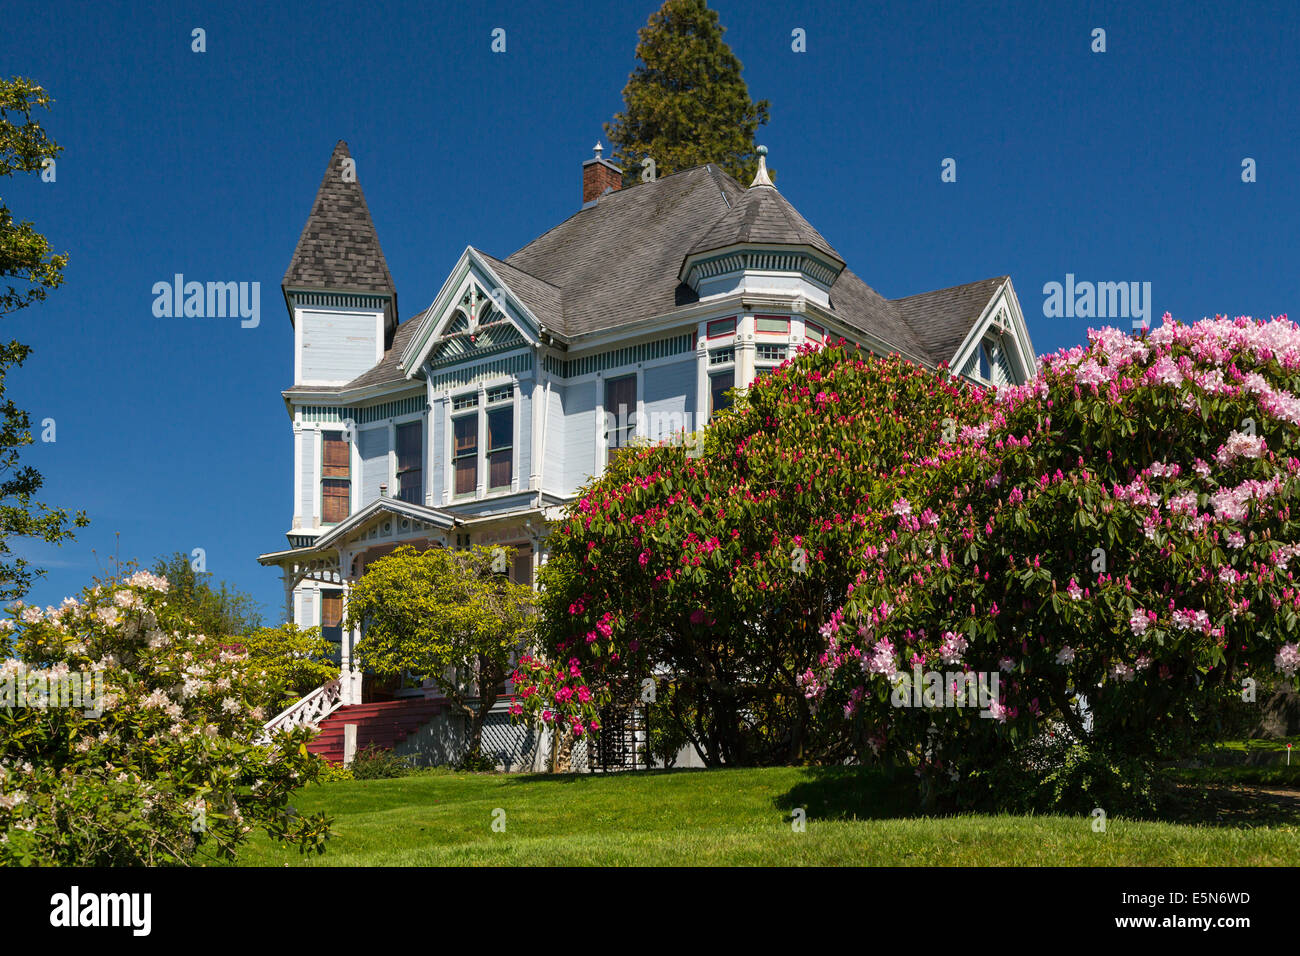 A large historic colonial home with rhododendron bushes in Astoria, Oregon, USA. - Stock Image